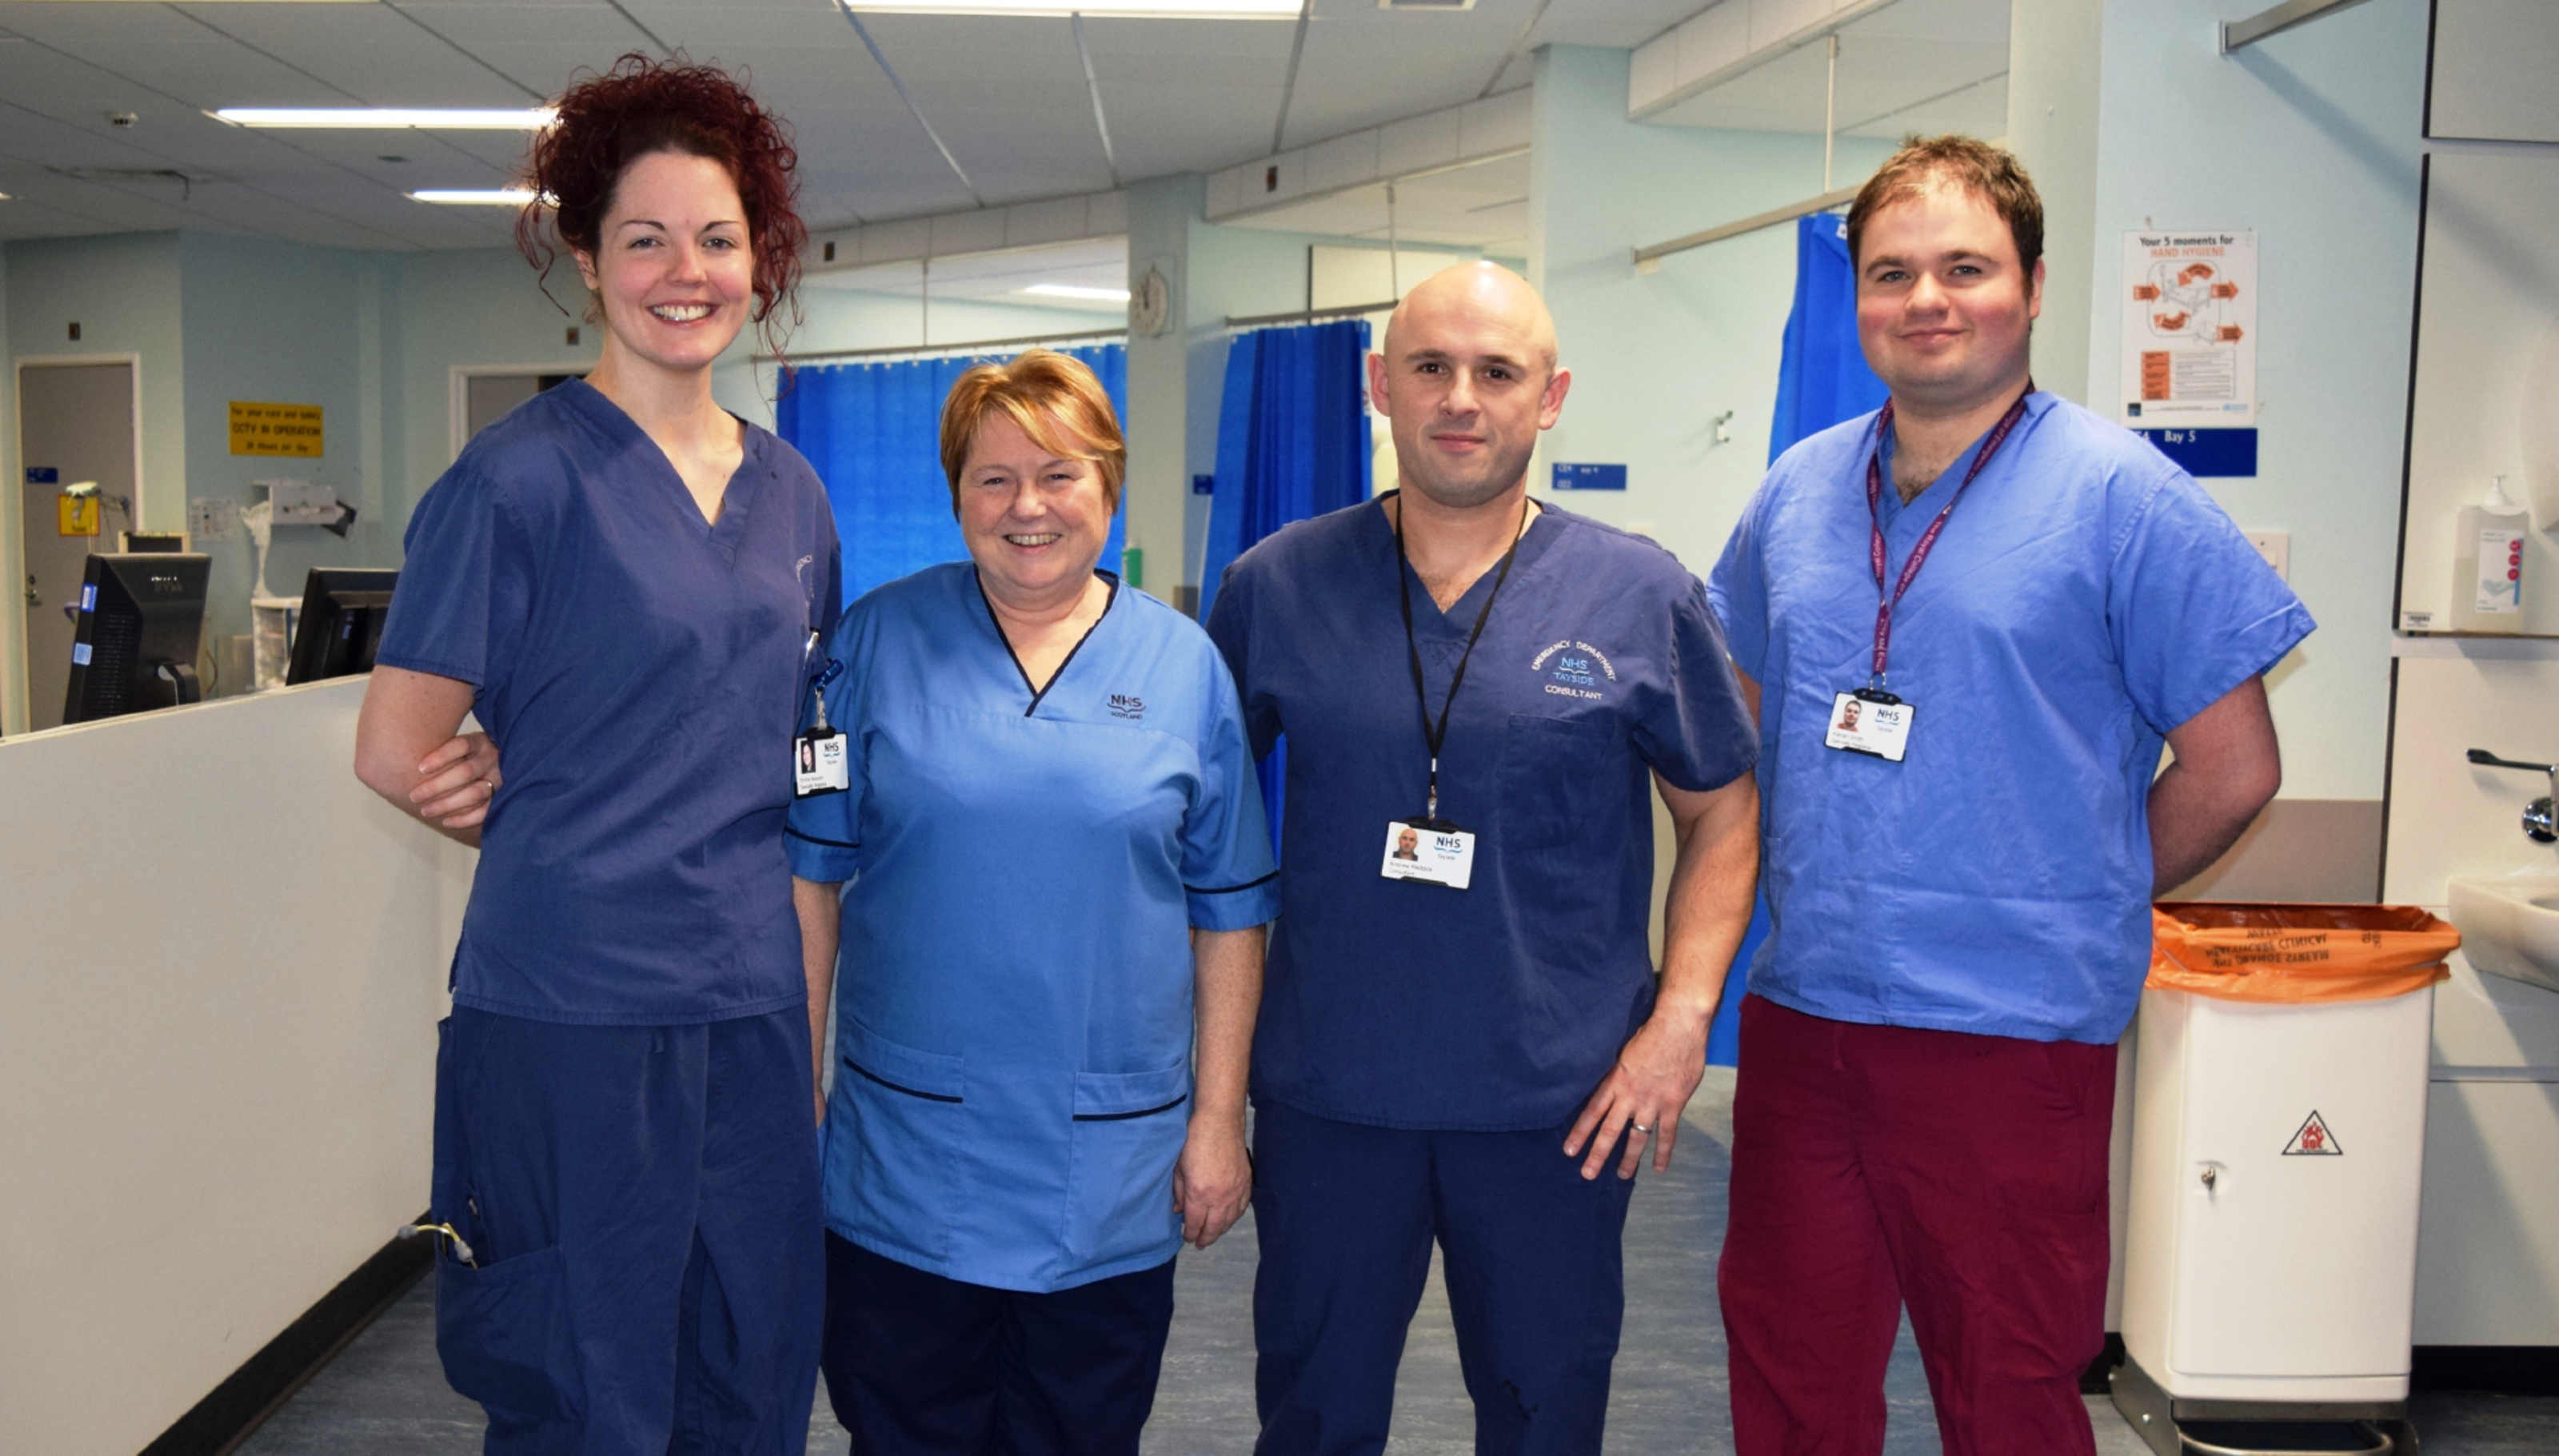 Specialist registrar Dr Emma Kenyon, emergency nurse practitioner Moira MacLeod, emergency consultant Dr Andy Reddick and core trainee Keiran Smith